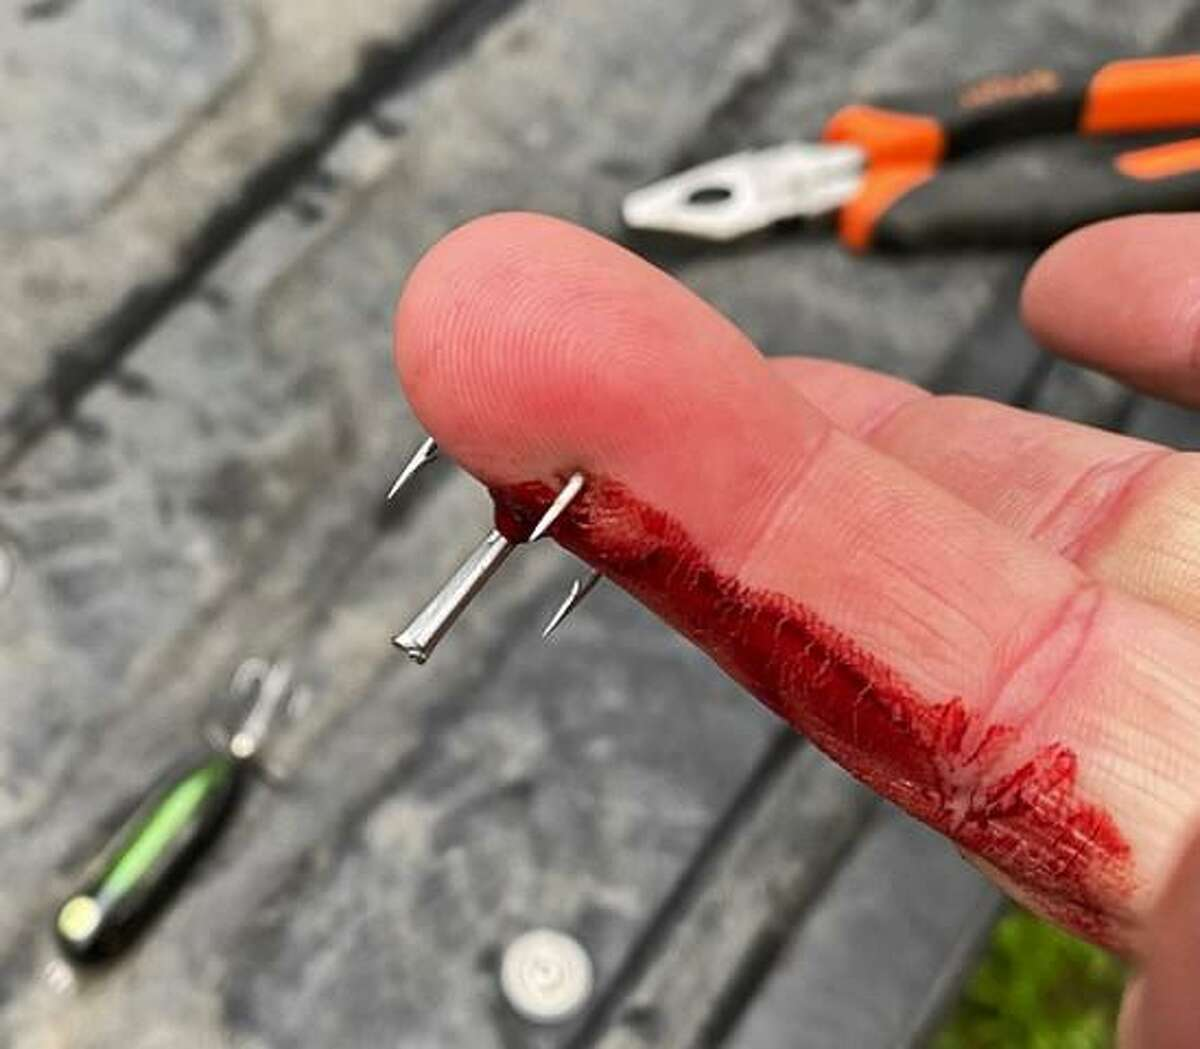 A fish hook dislodged from a largemouth bass penetrated the ring finger of Mike Davis of San Antonio, one of two accidents on the trip involving Heddon Baby Torpedo topwater lures.